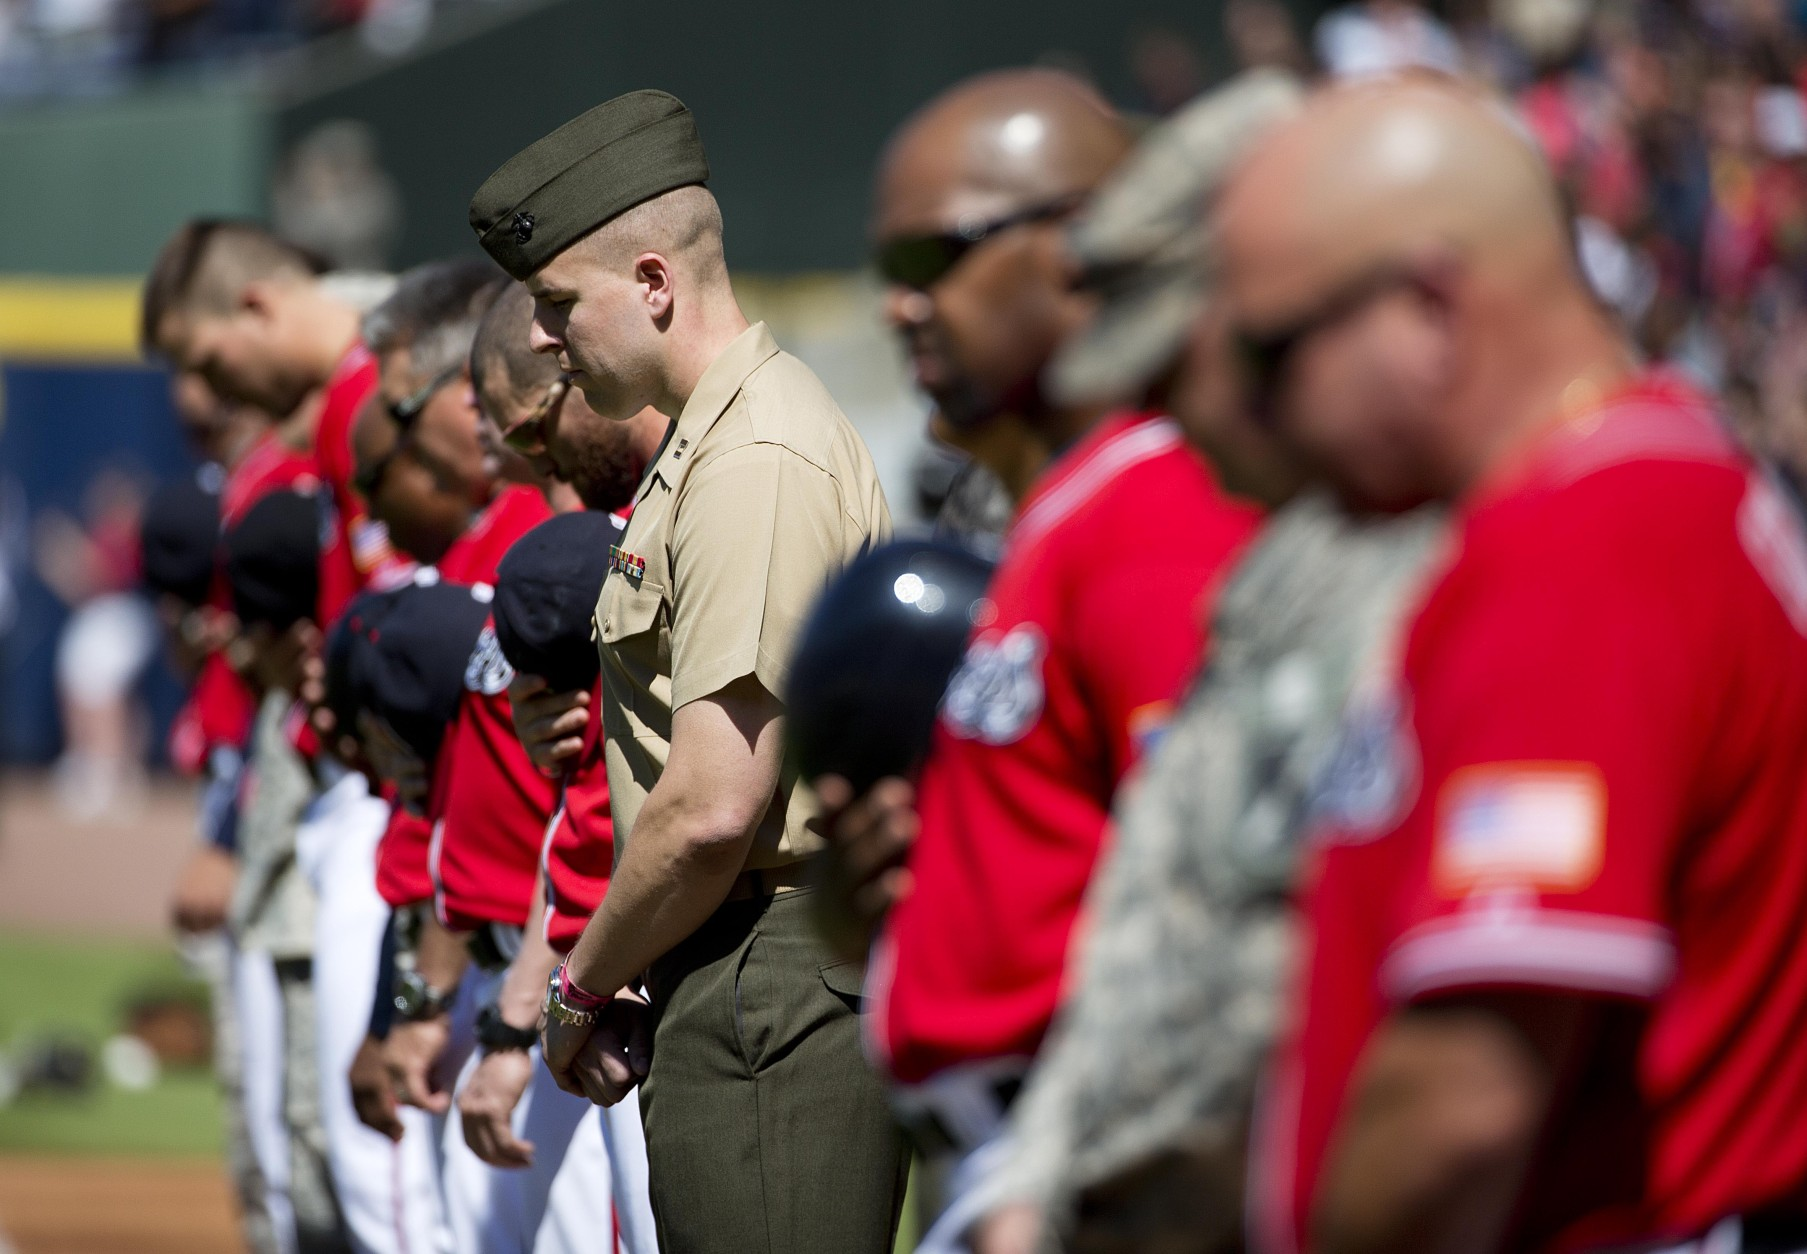 Members of the U.S. military and Atlanta Braves observe a moment of silence at a Memorial Day ceremony before the start of a baseball game between the Braves and the Milwaukee Brewers Saturday, May 23, 2015, in Atlanta. (AP Photo/David Goldman)